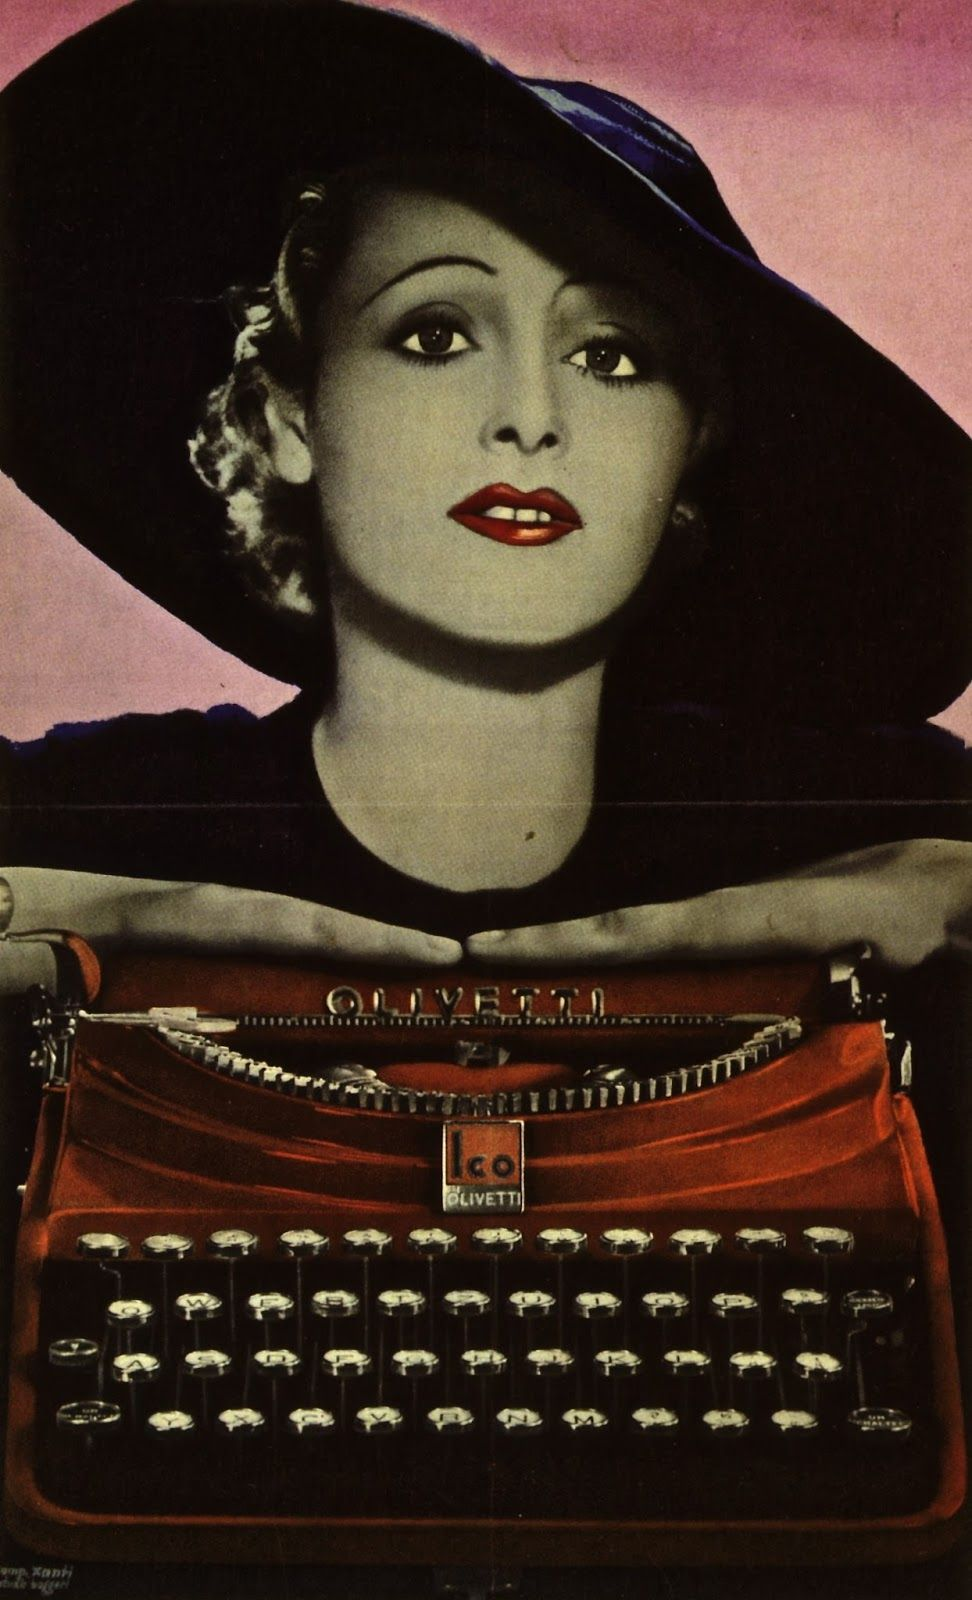 Poster designed in 1935 by Xanti Schawinsky for MP1, the first Olivetti portable typewriter